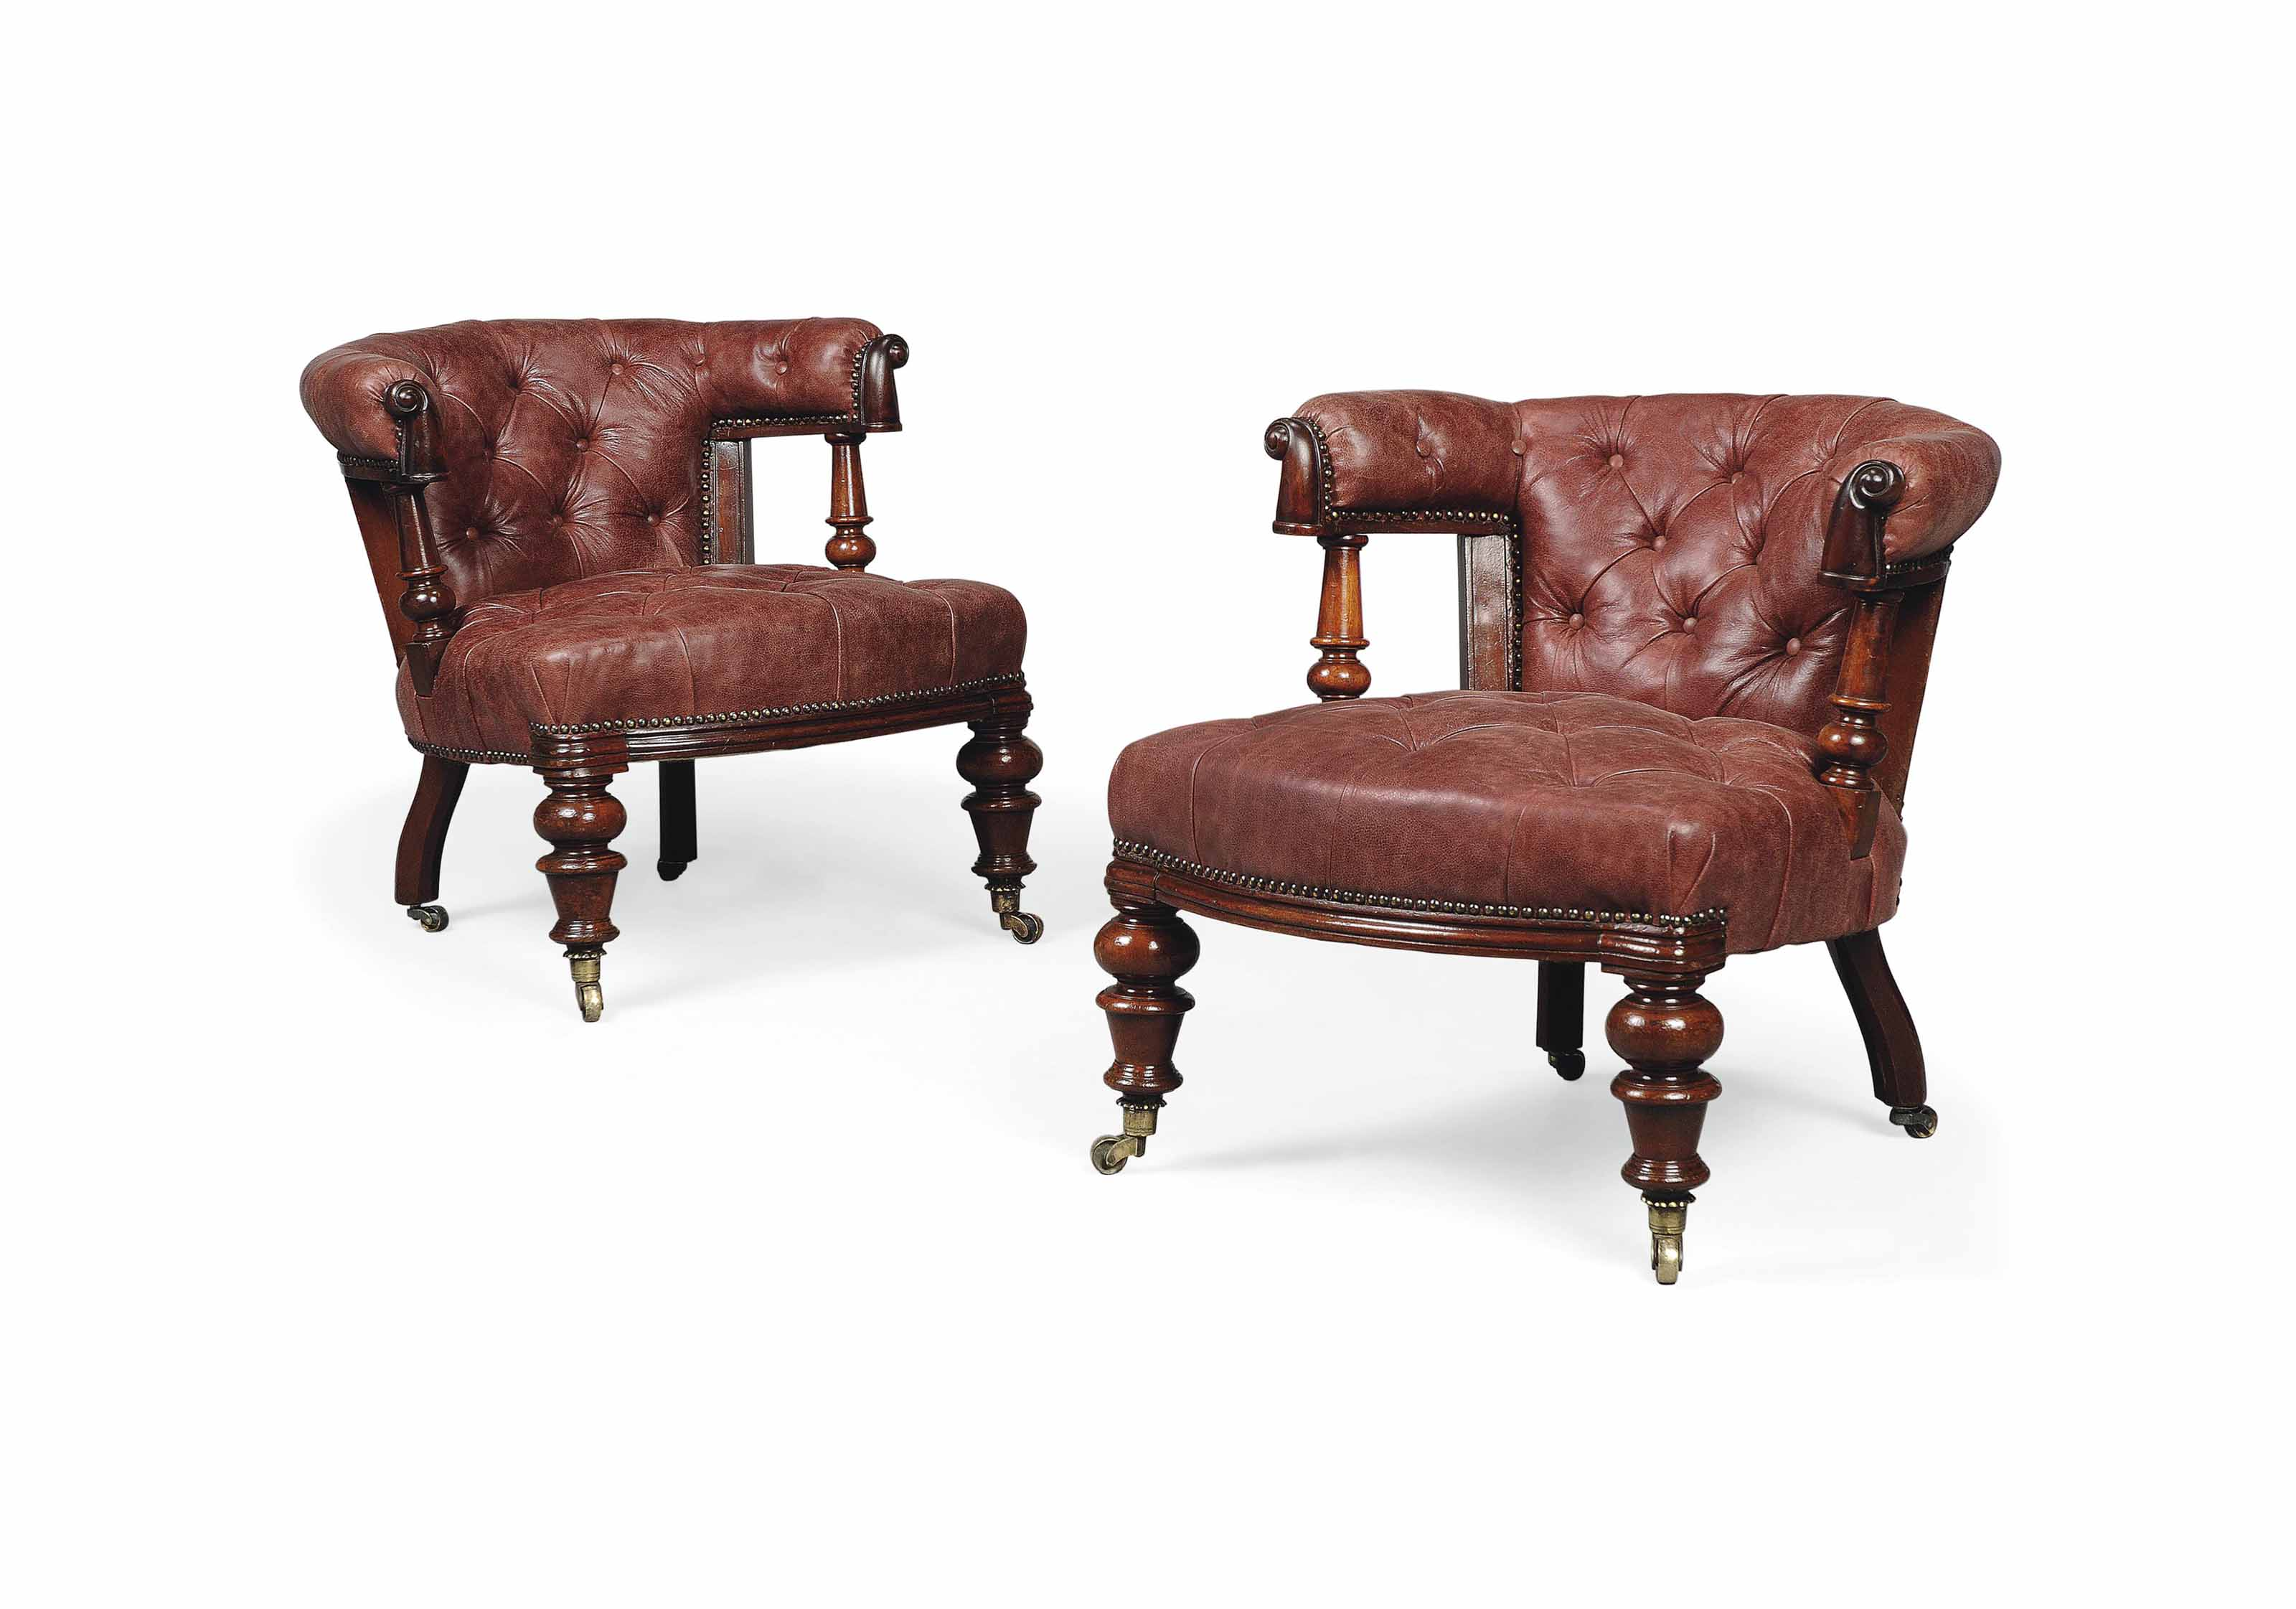 A PAIR OF MID VICTORIAN MAHOGA